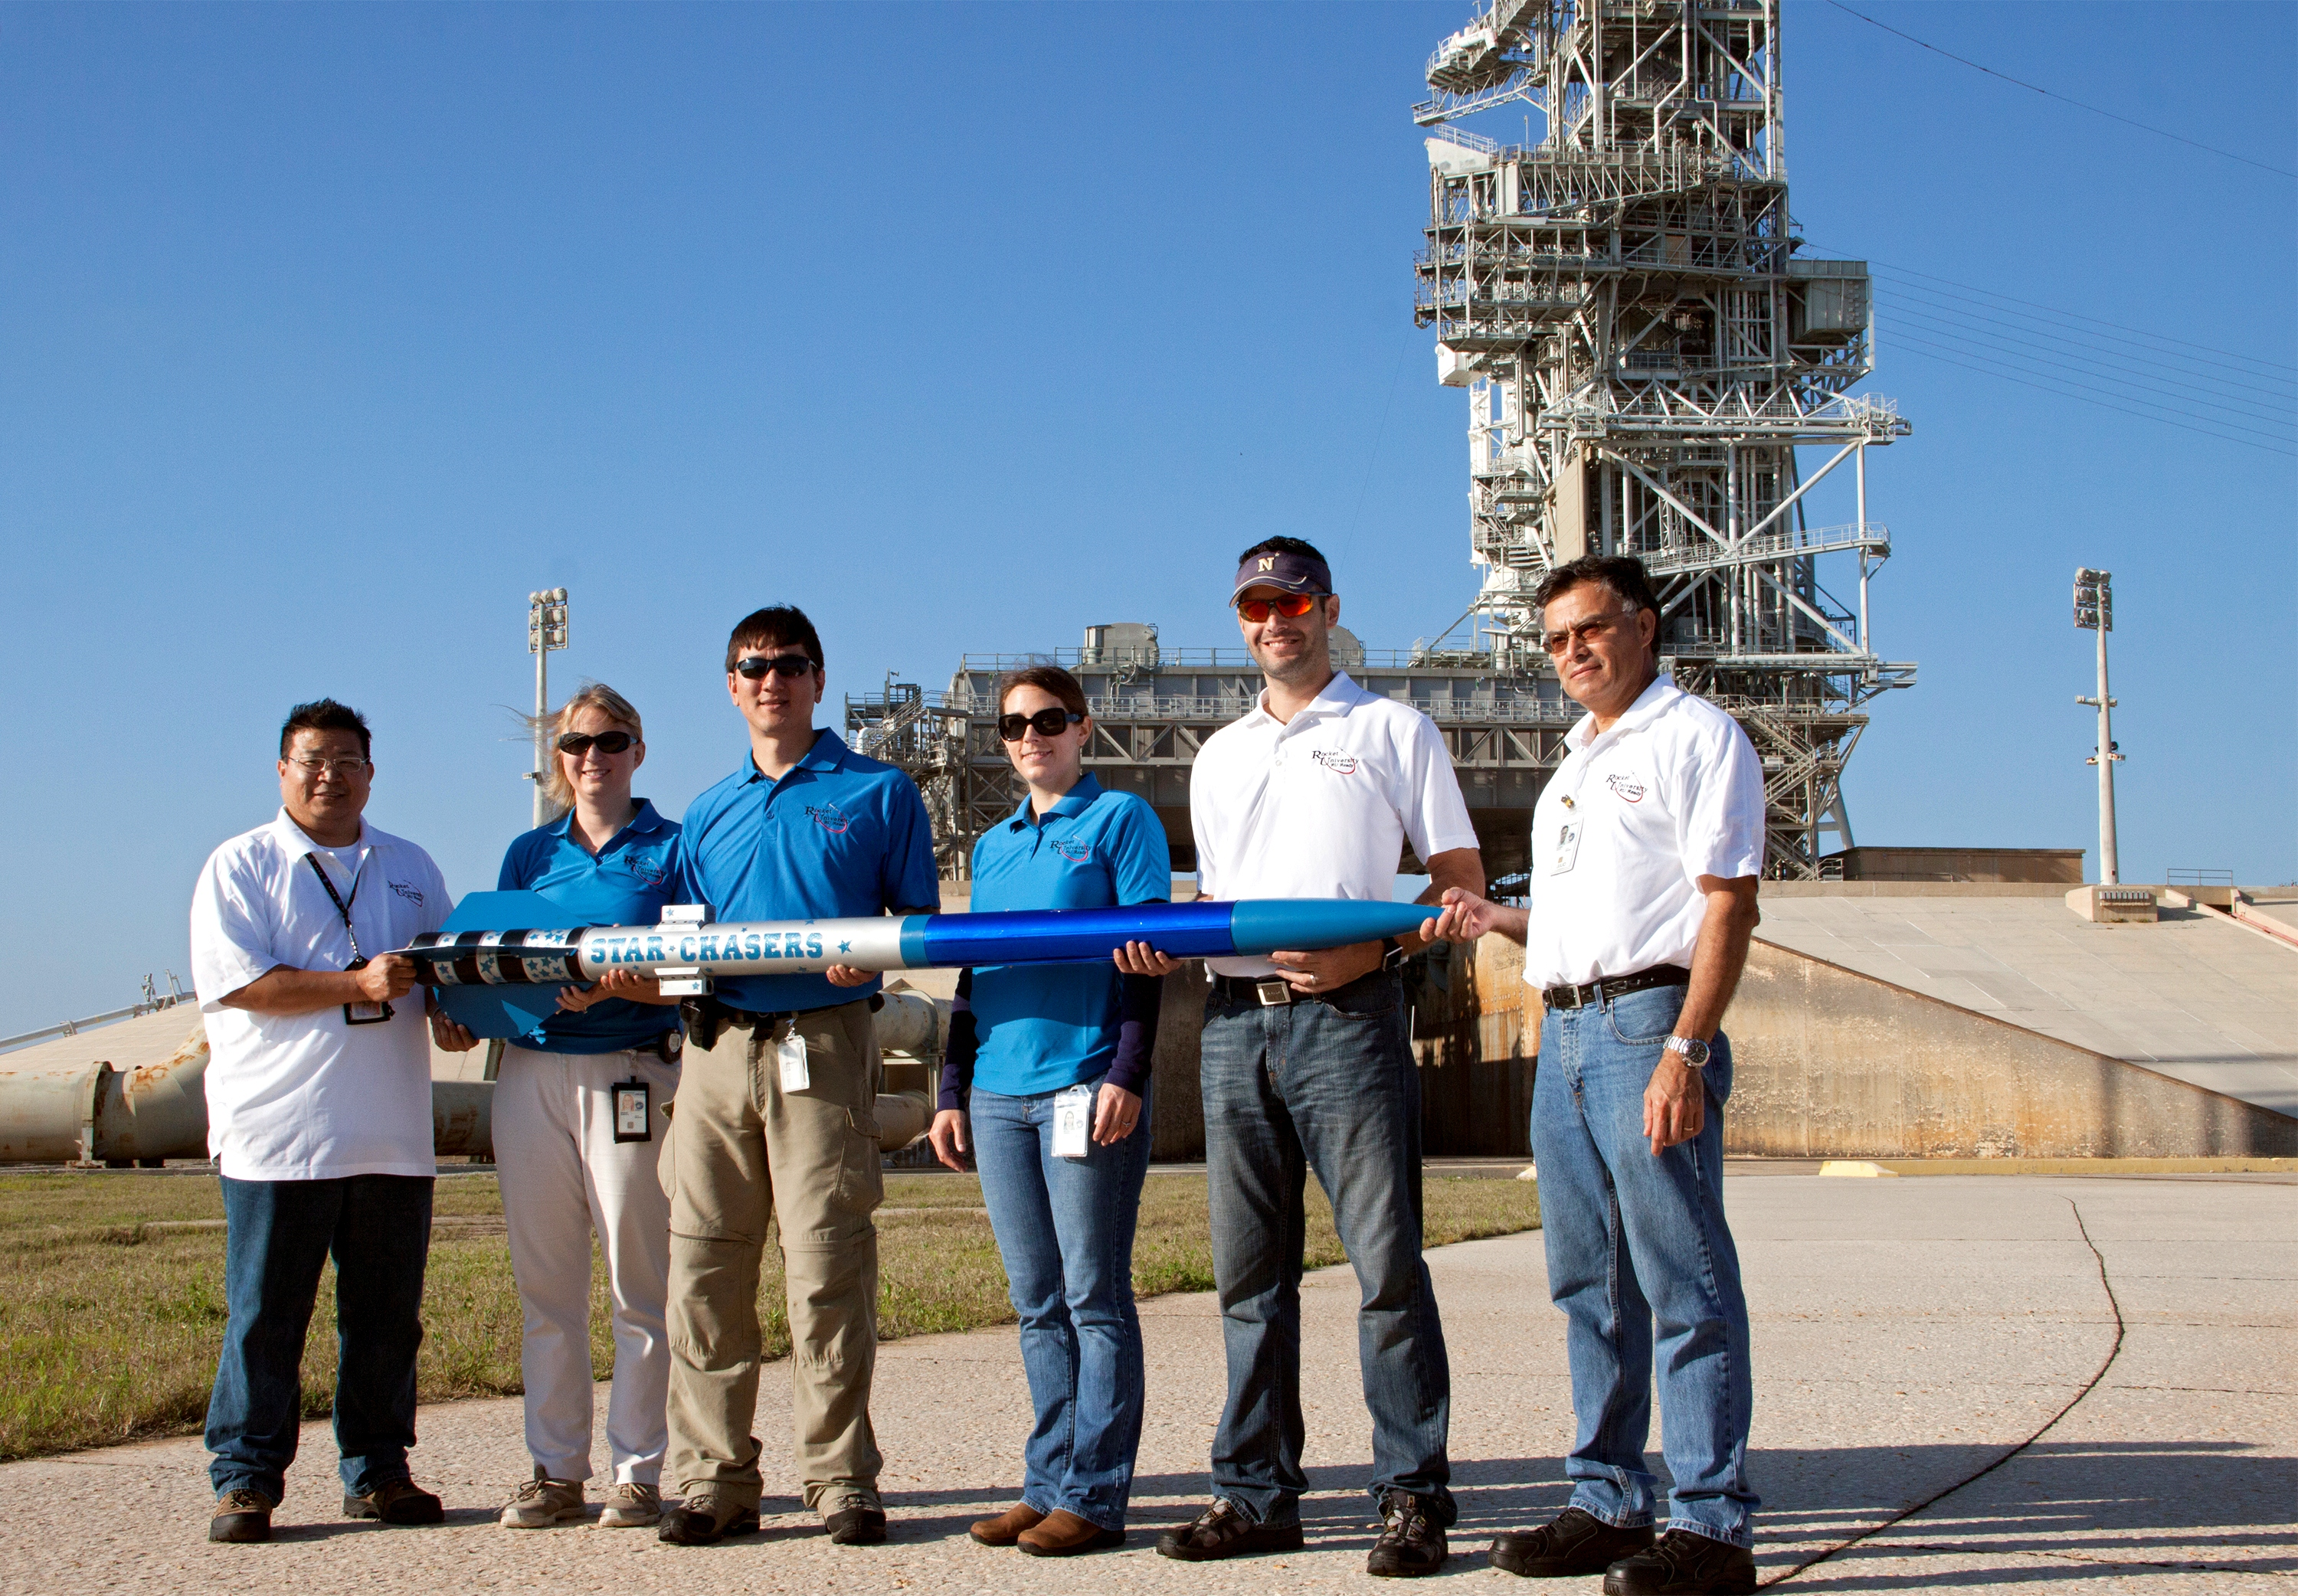 NASA - Engineers Develop Skills for Future Flight Systems ...